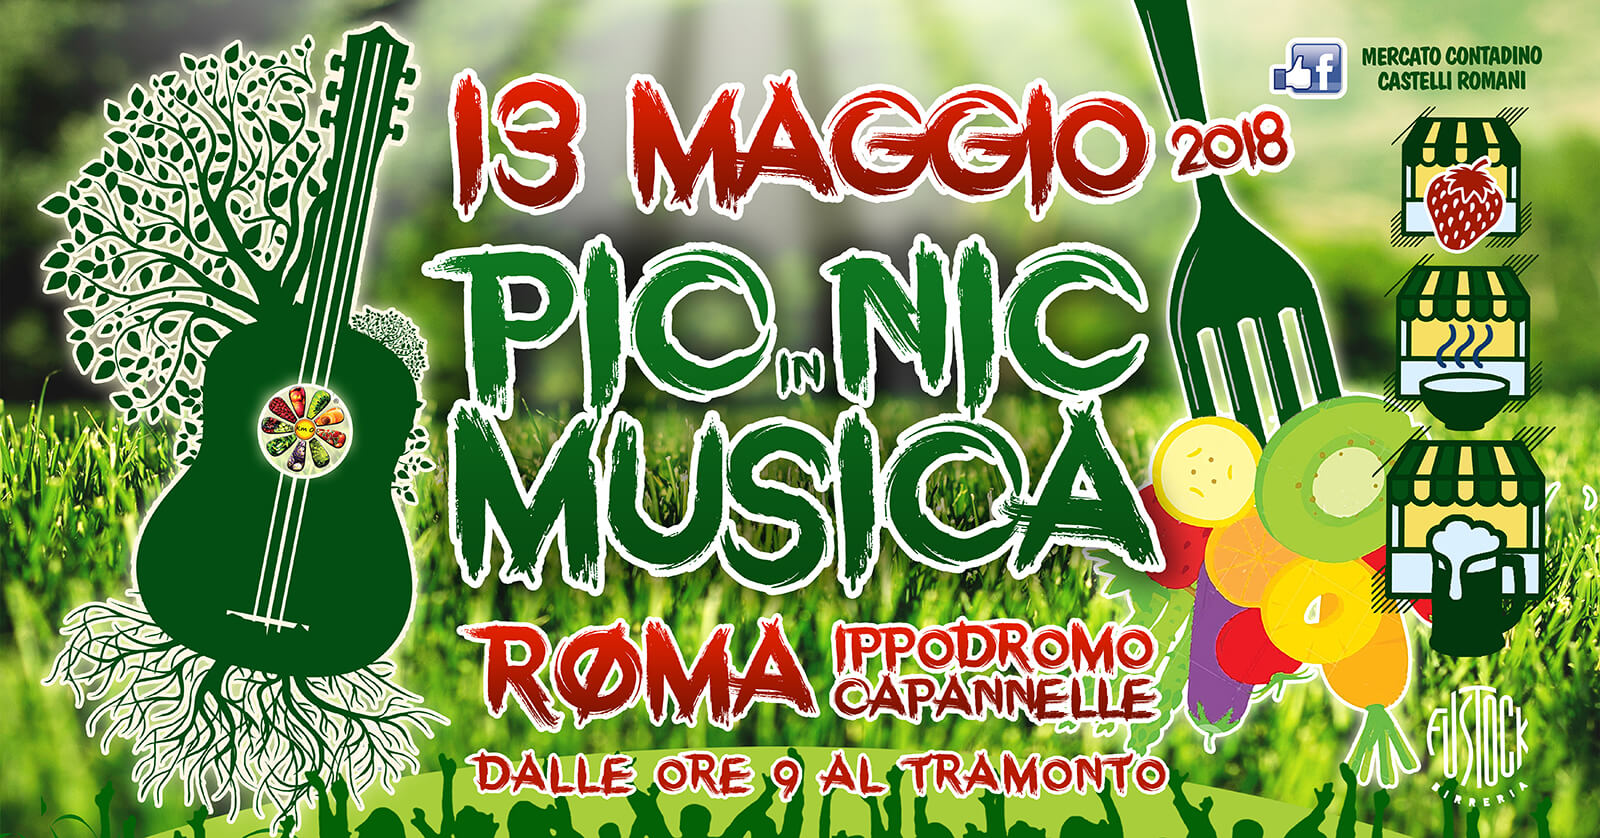 PIC NIC in Musica a Capannelle